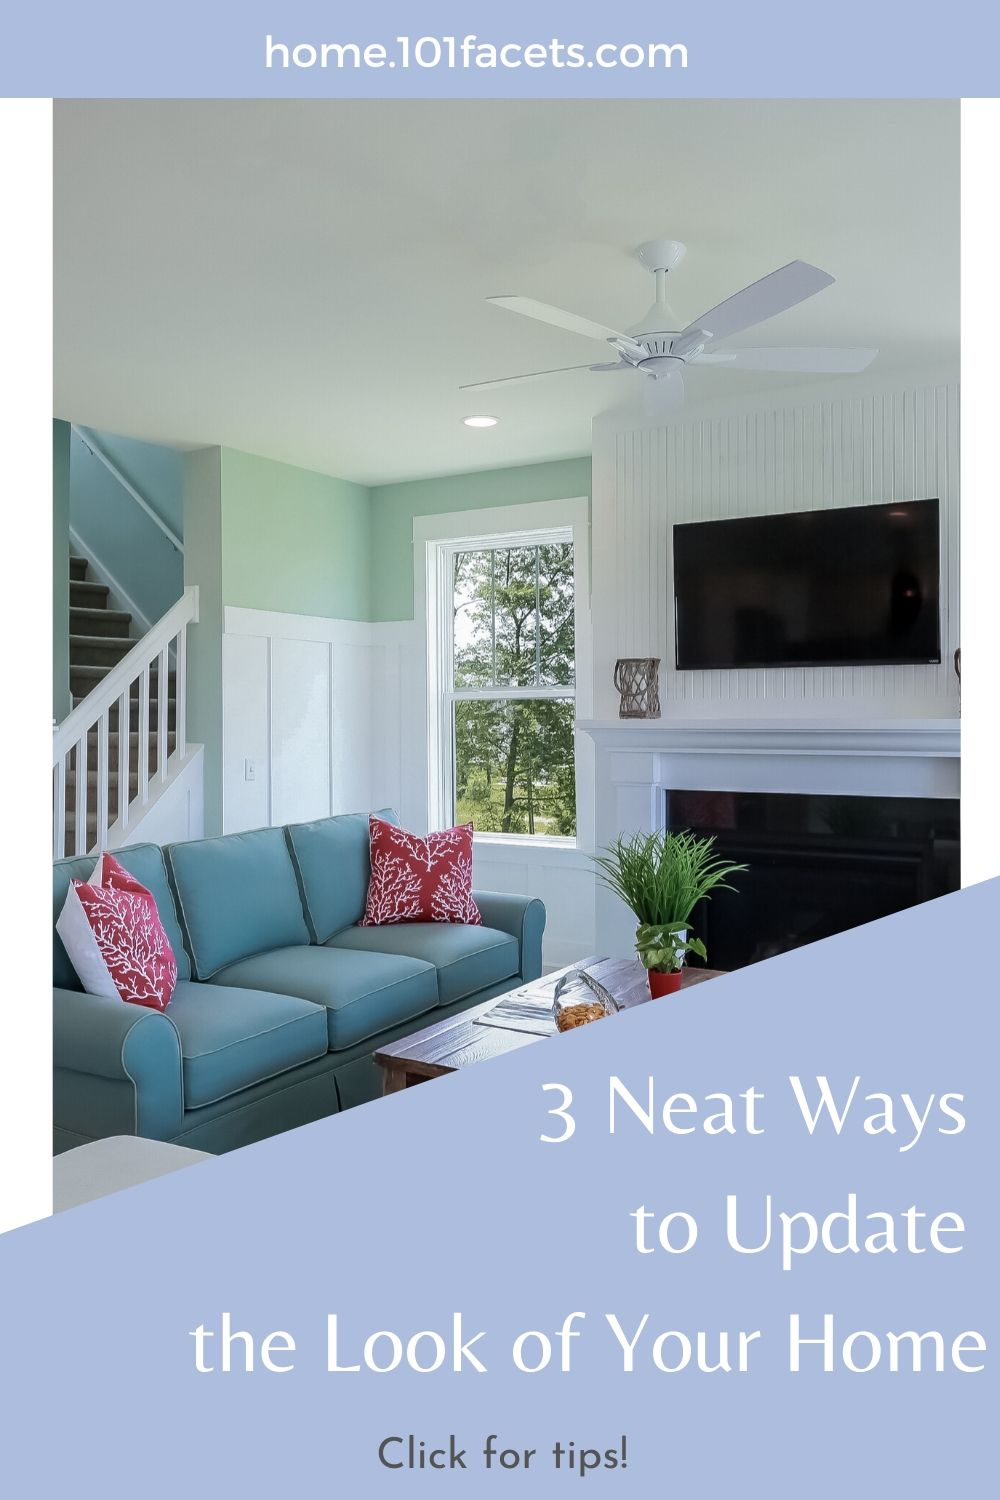 3 Neat Ways to Update the Look of Your Home